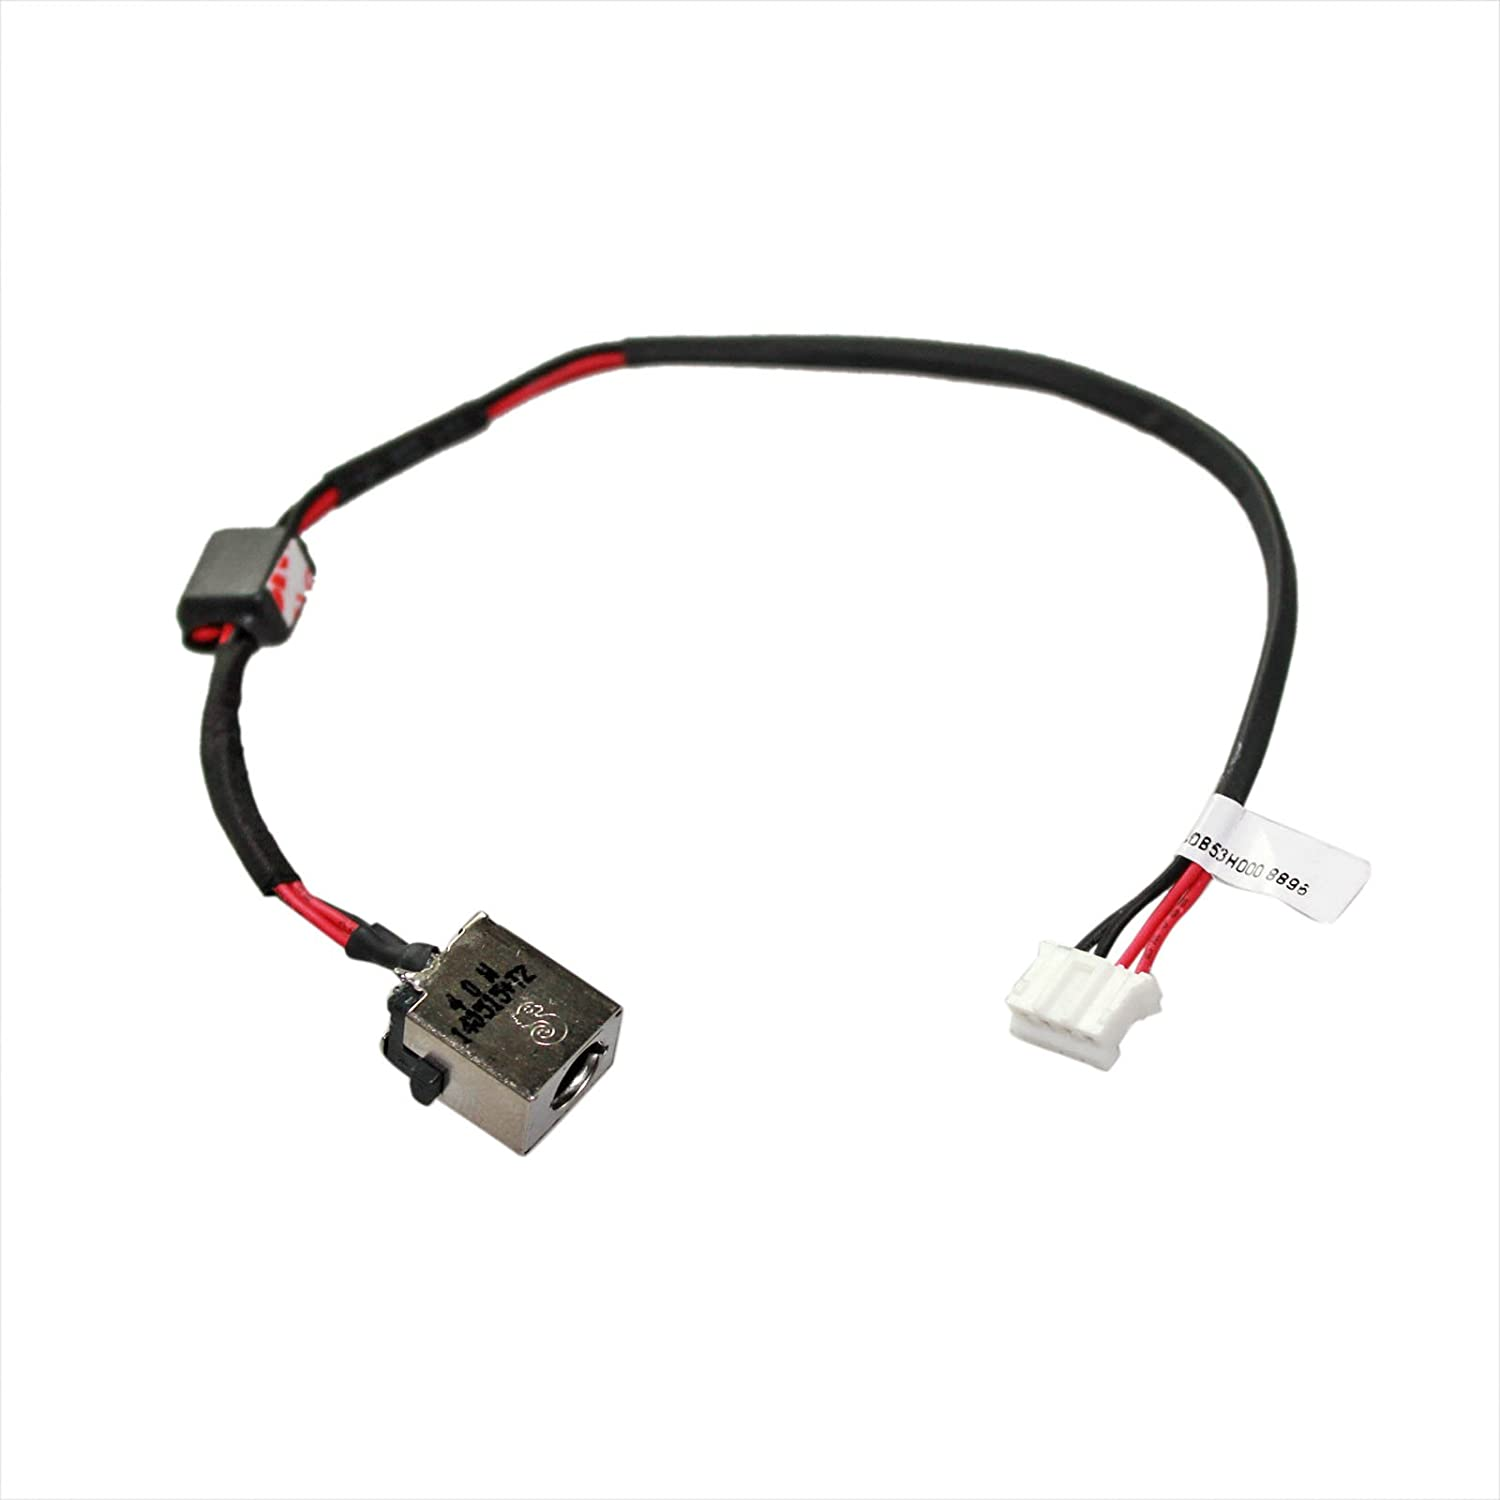 Gintai DC Power Jack Harness Cable Socket Plug Port Replacement for Acer Aspire E5-511 E5-521 E5-551 E5-571 V3-572